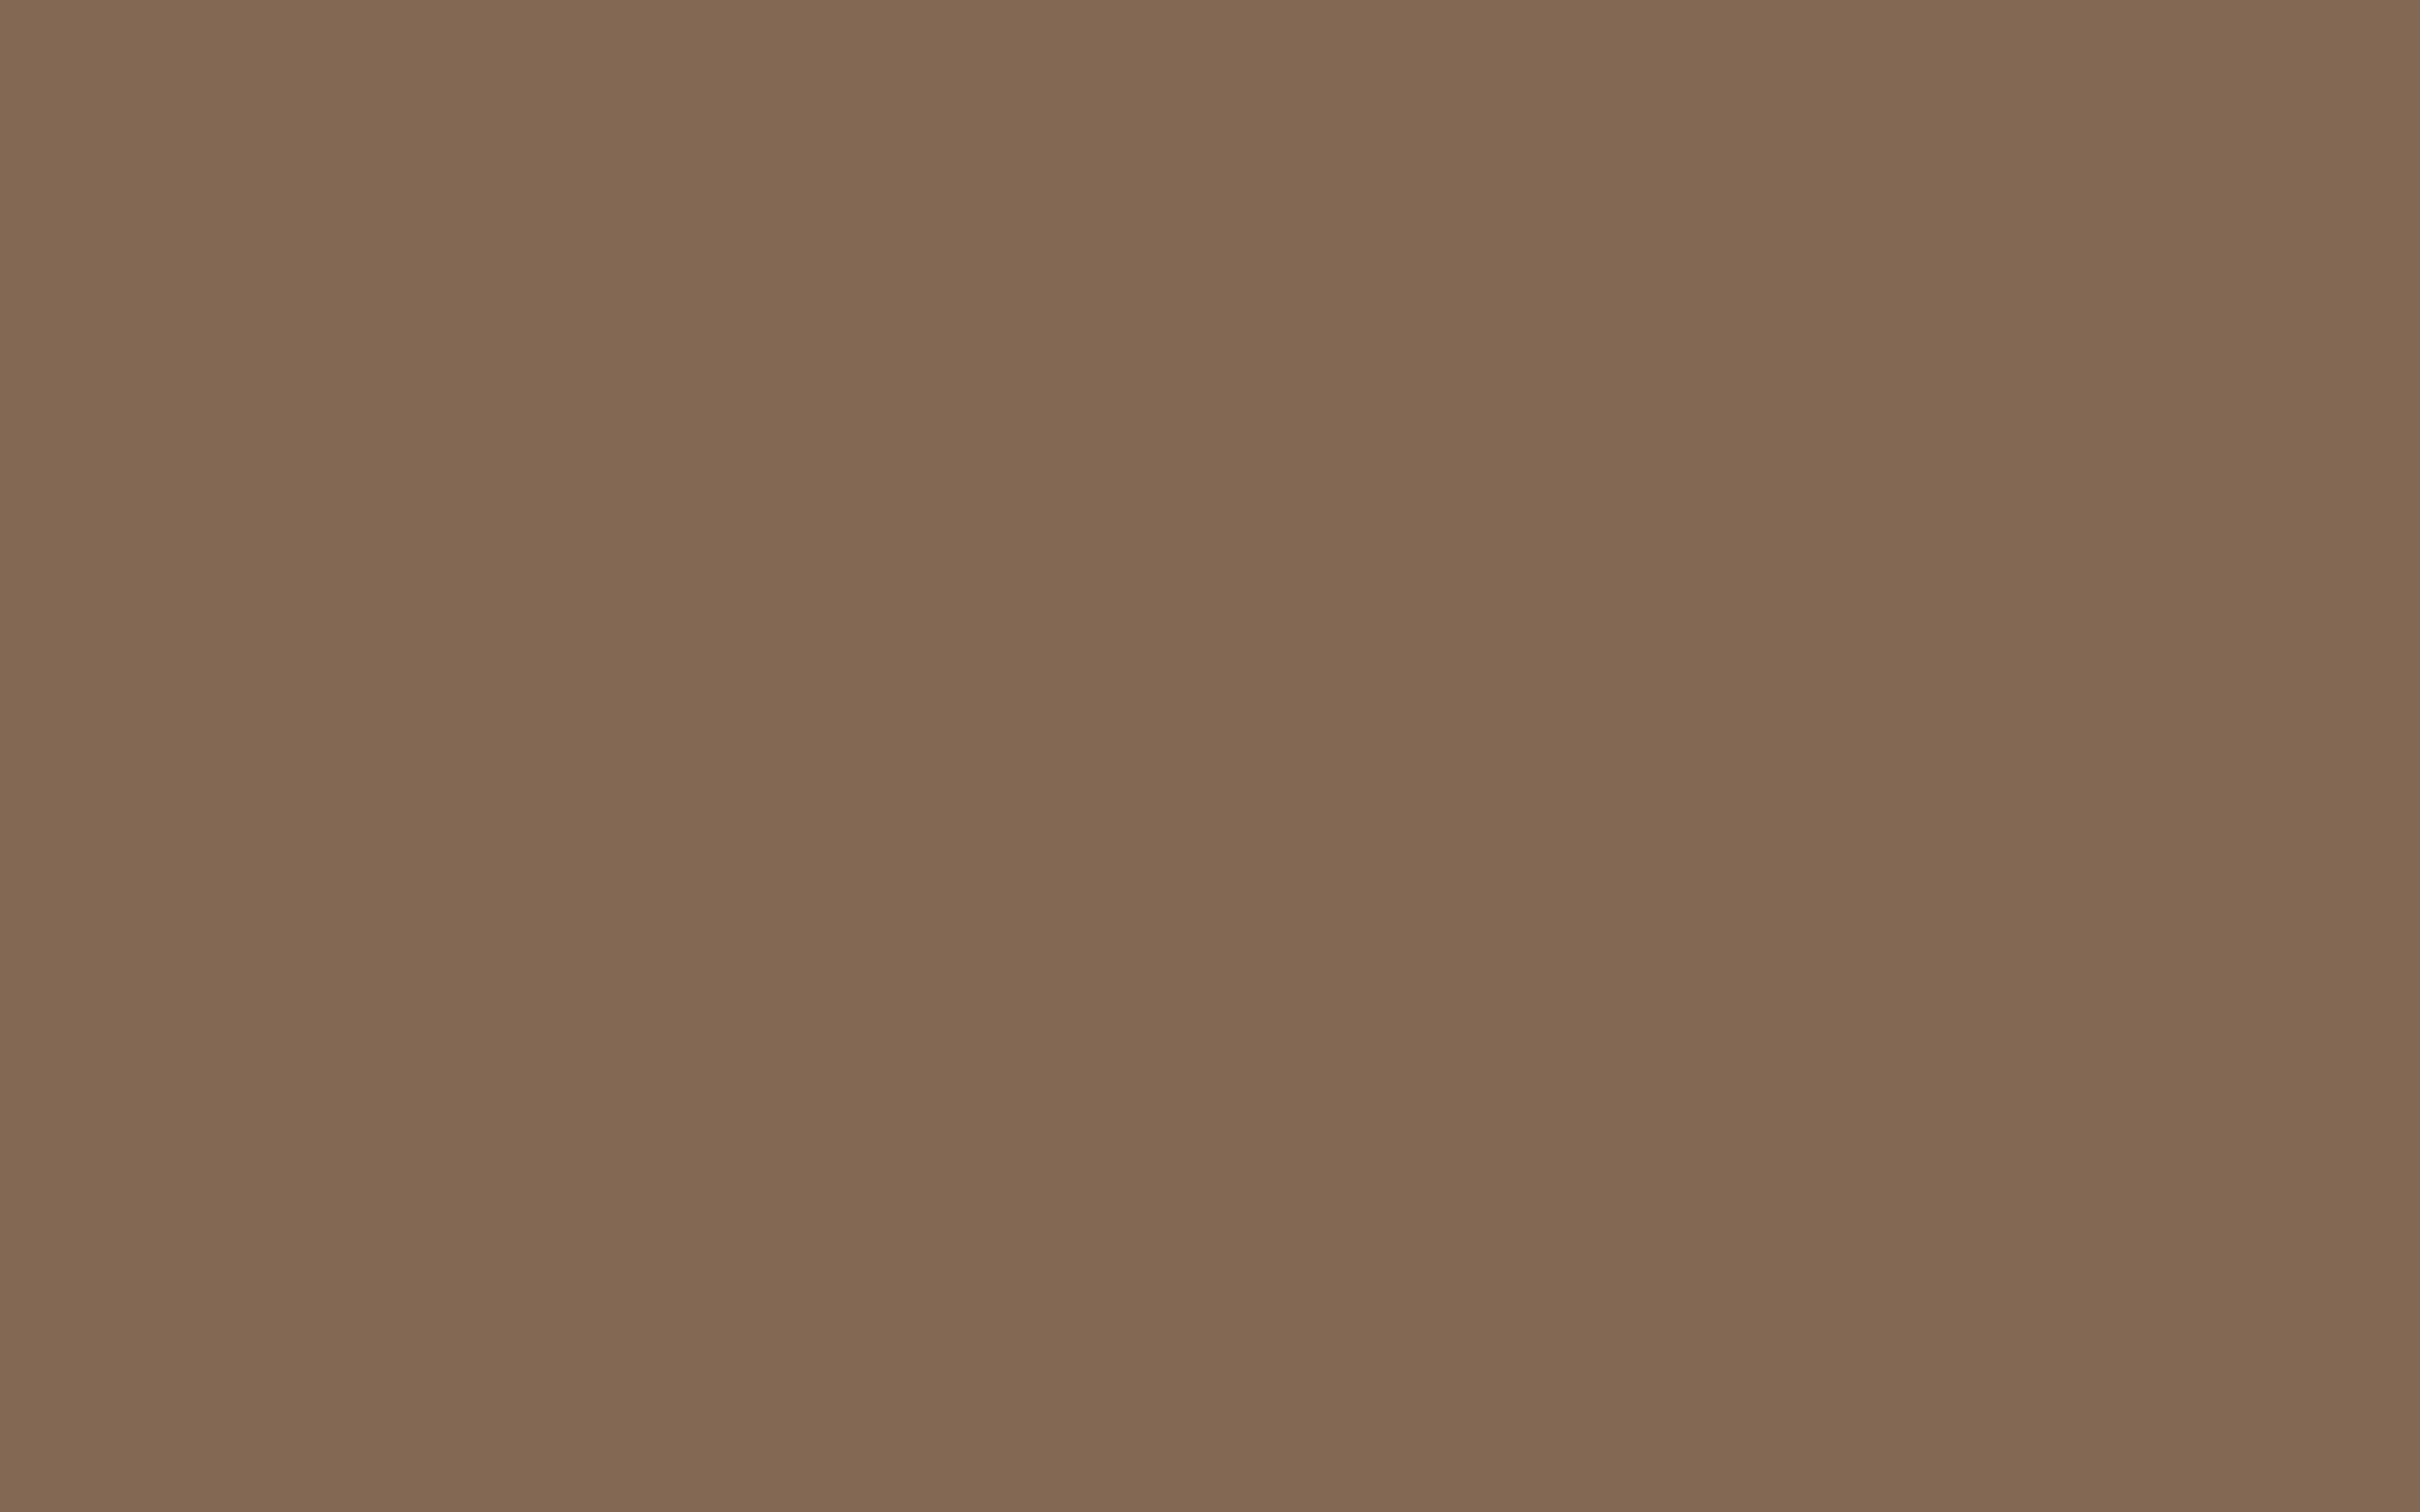 2880x1800 Pastel Brown Solid Color Background